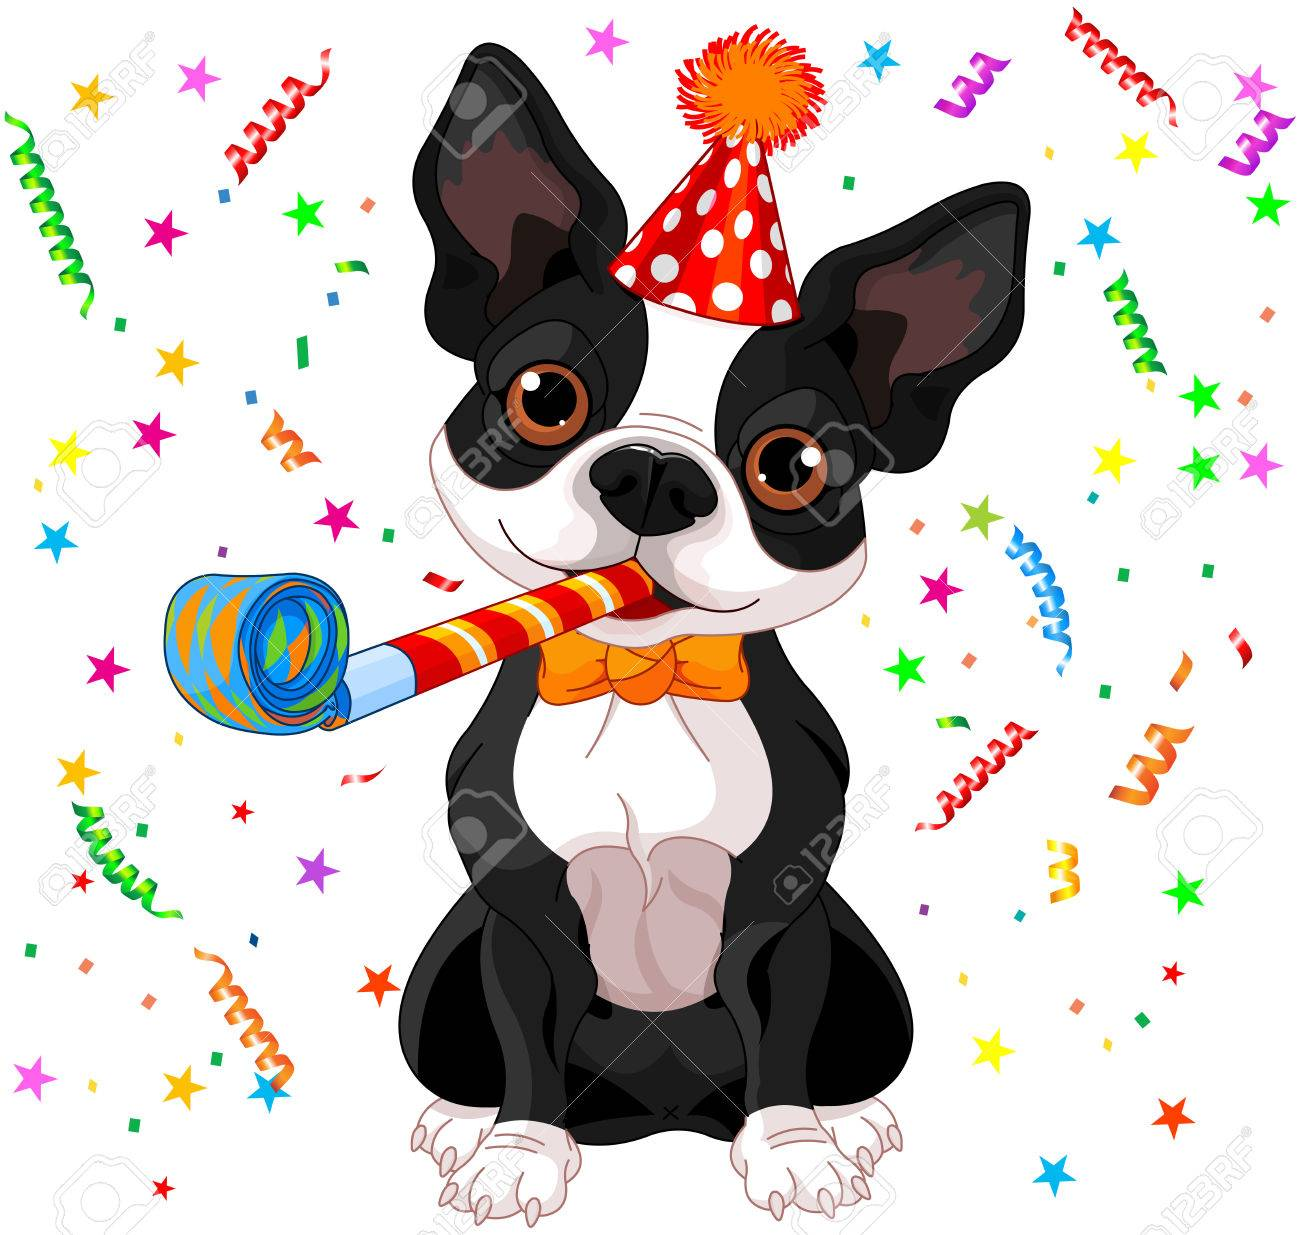 Absence de grognements 35588778-illustration-of-cute-boston-terrier-celebrating